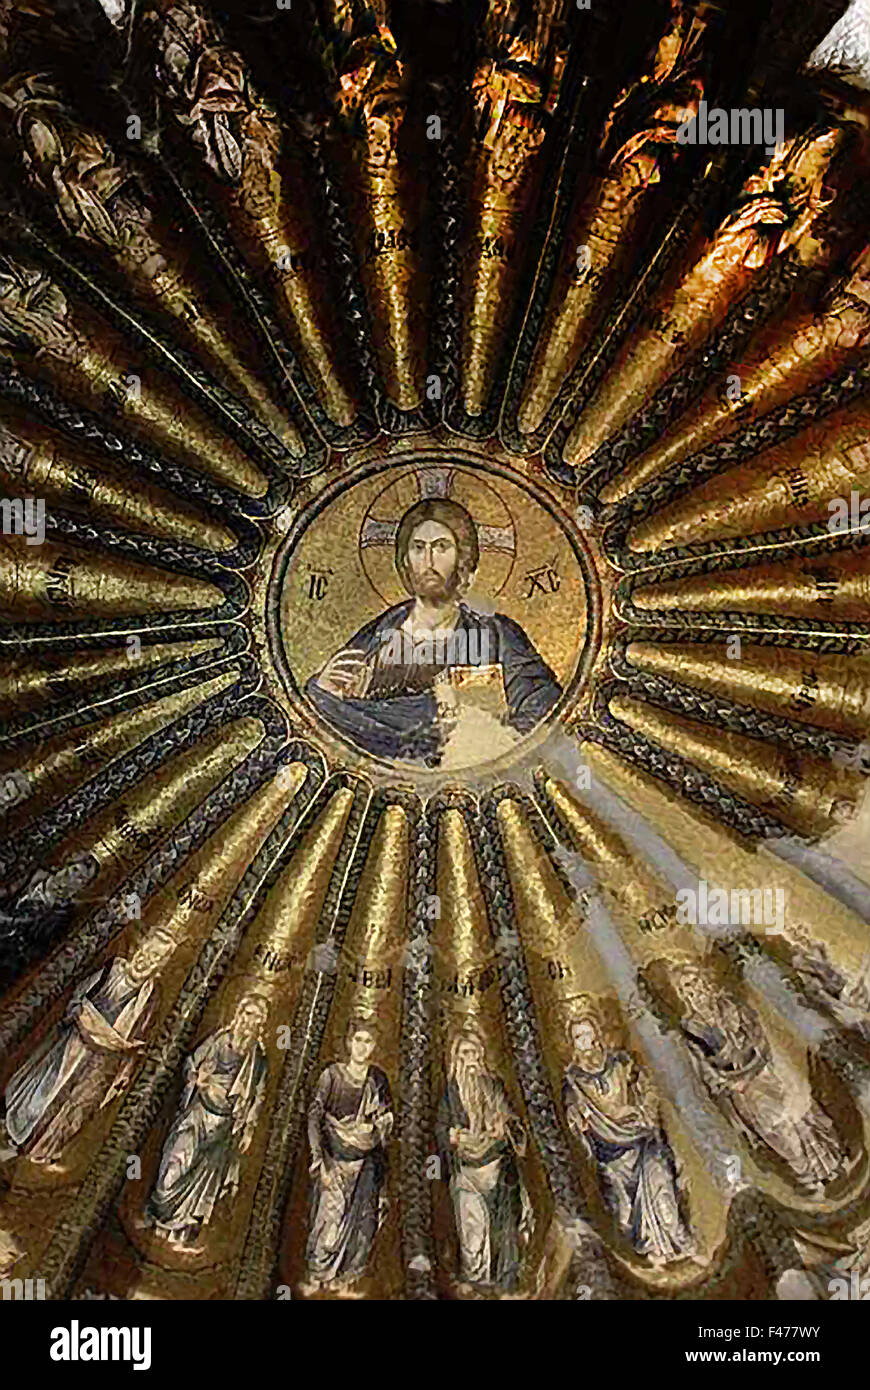 5785. JESUS, 13TH. C. MOSAIC FROM THE BYZANTINE CHURCH CHORA IN ISTAMBUL - Stock Image